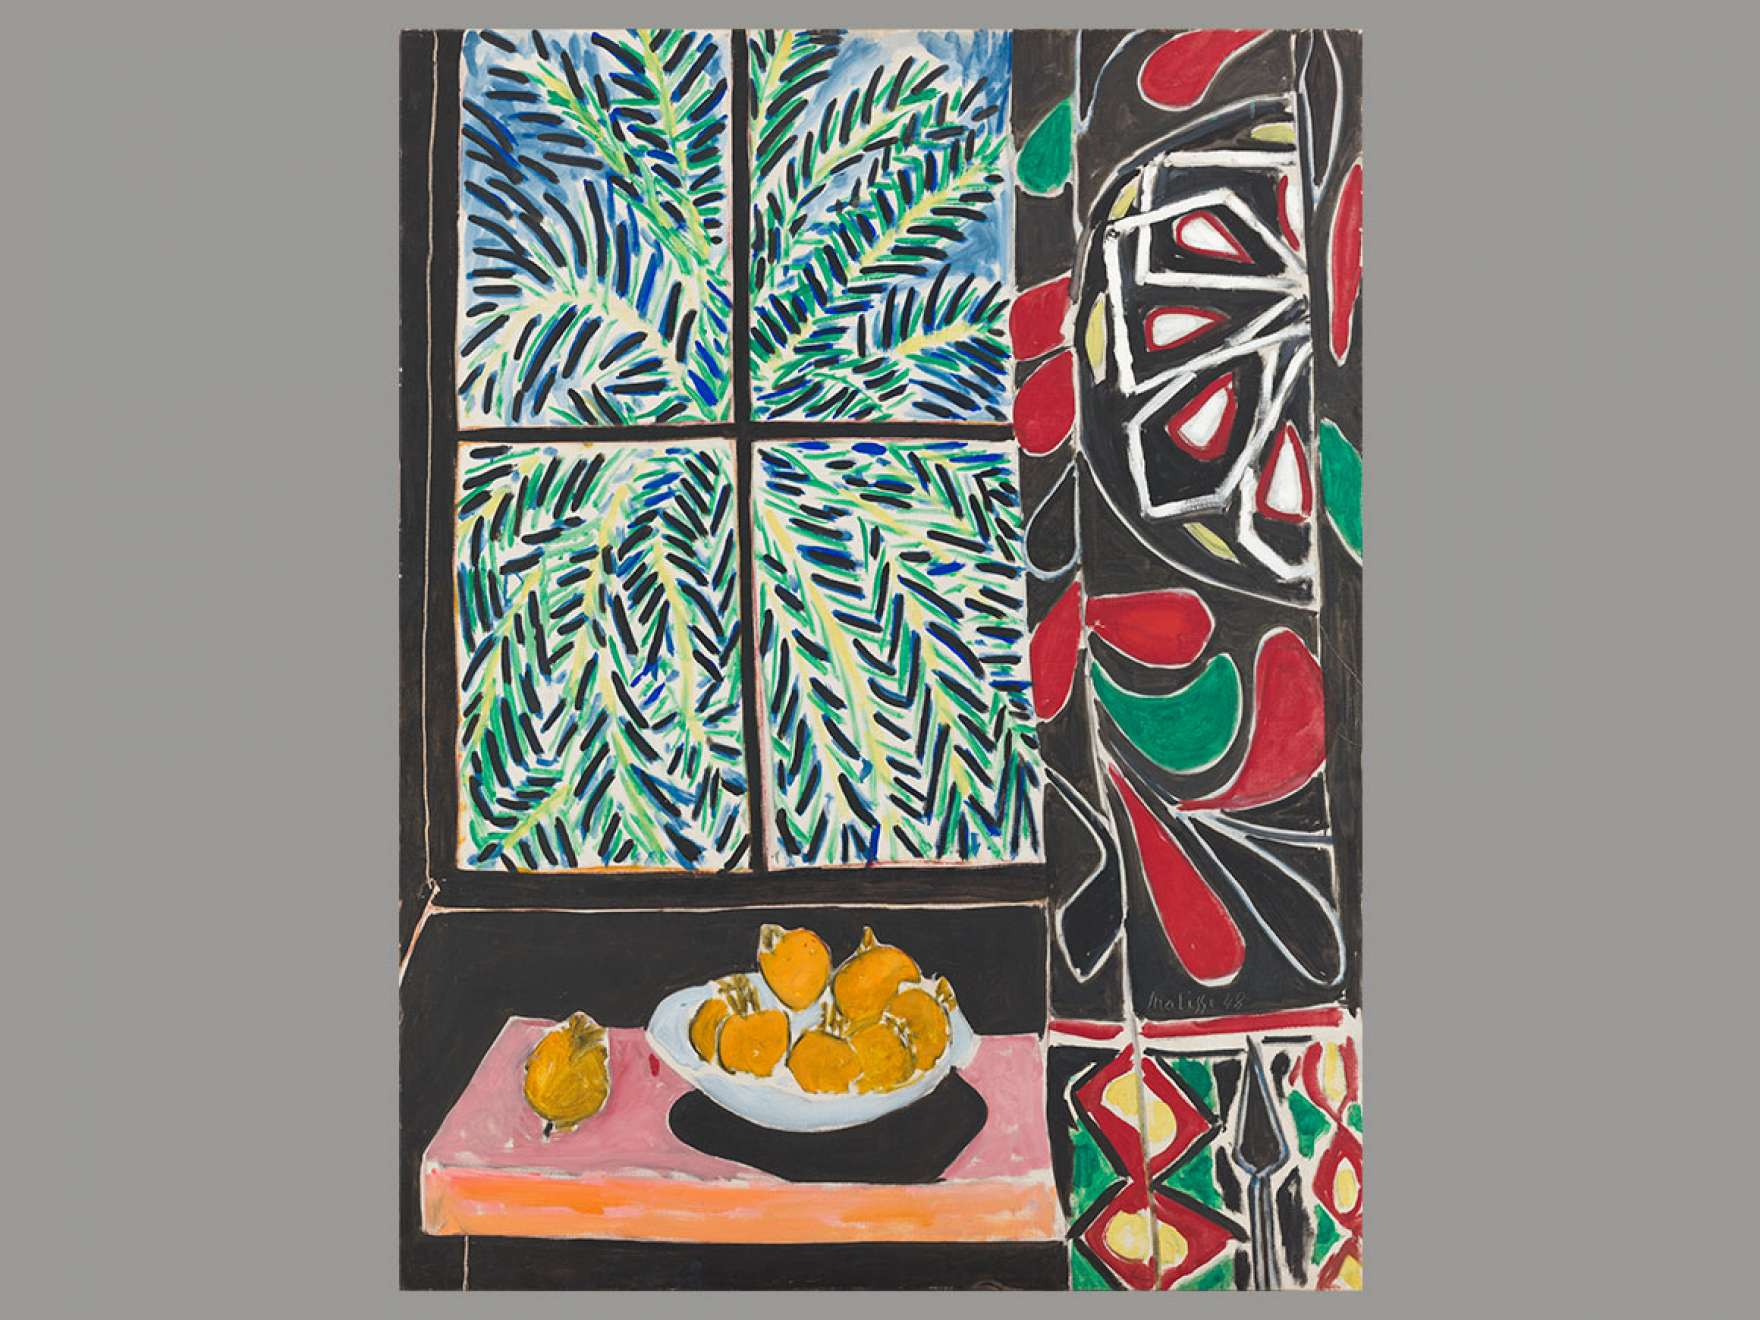 Henri Matisse's painting, Interior with Egyptian Curtain